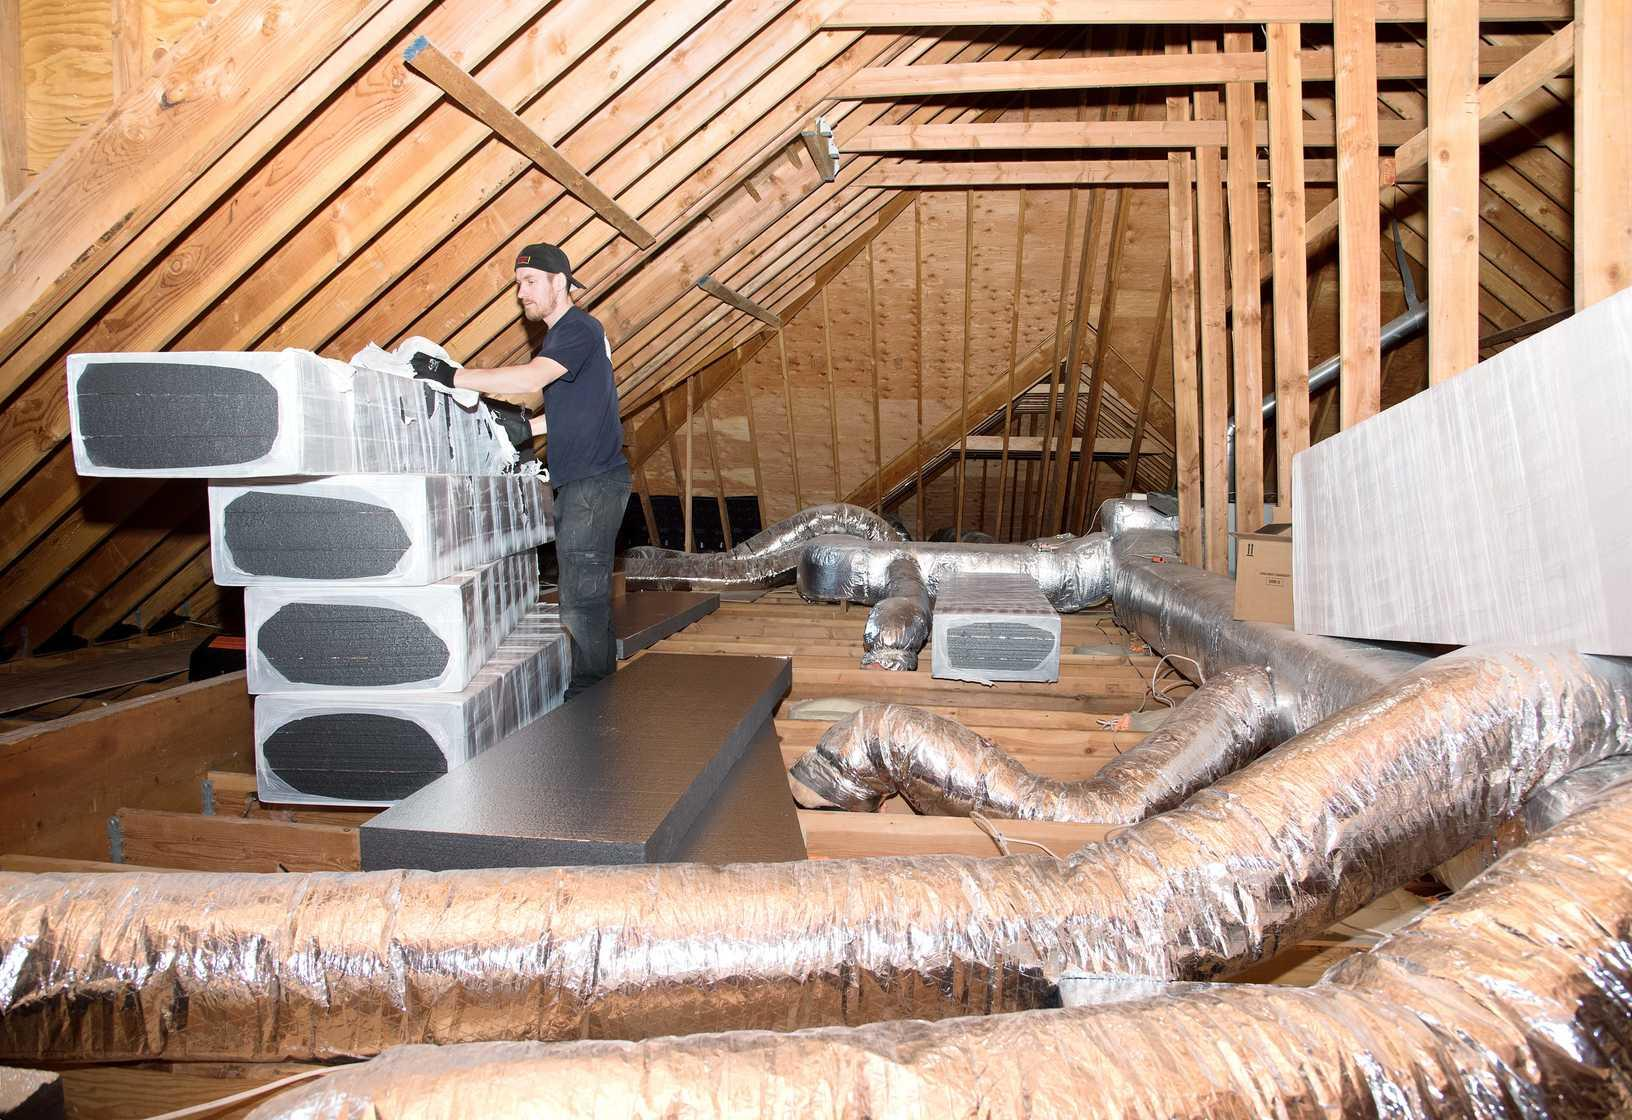 Attic Insulation and Air Sealing Ductwork - Before Photo